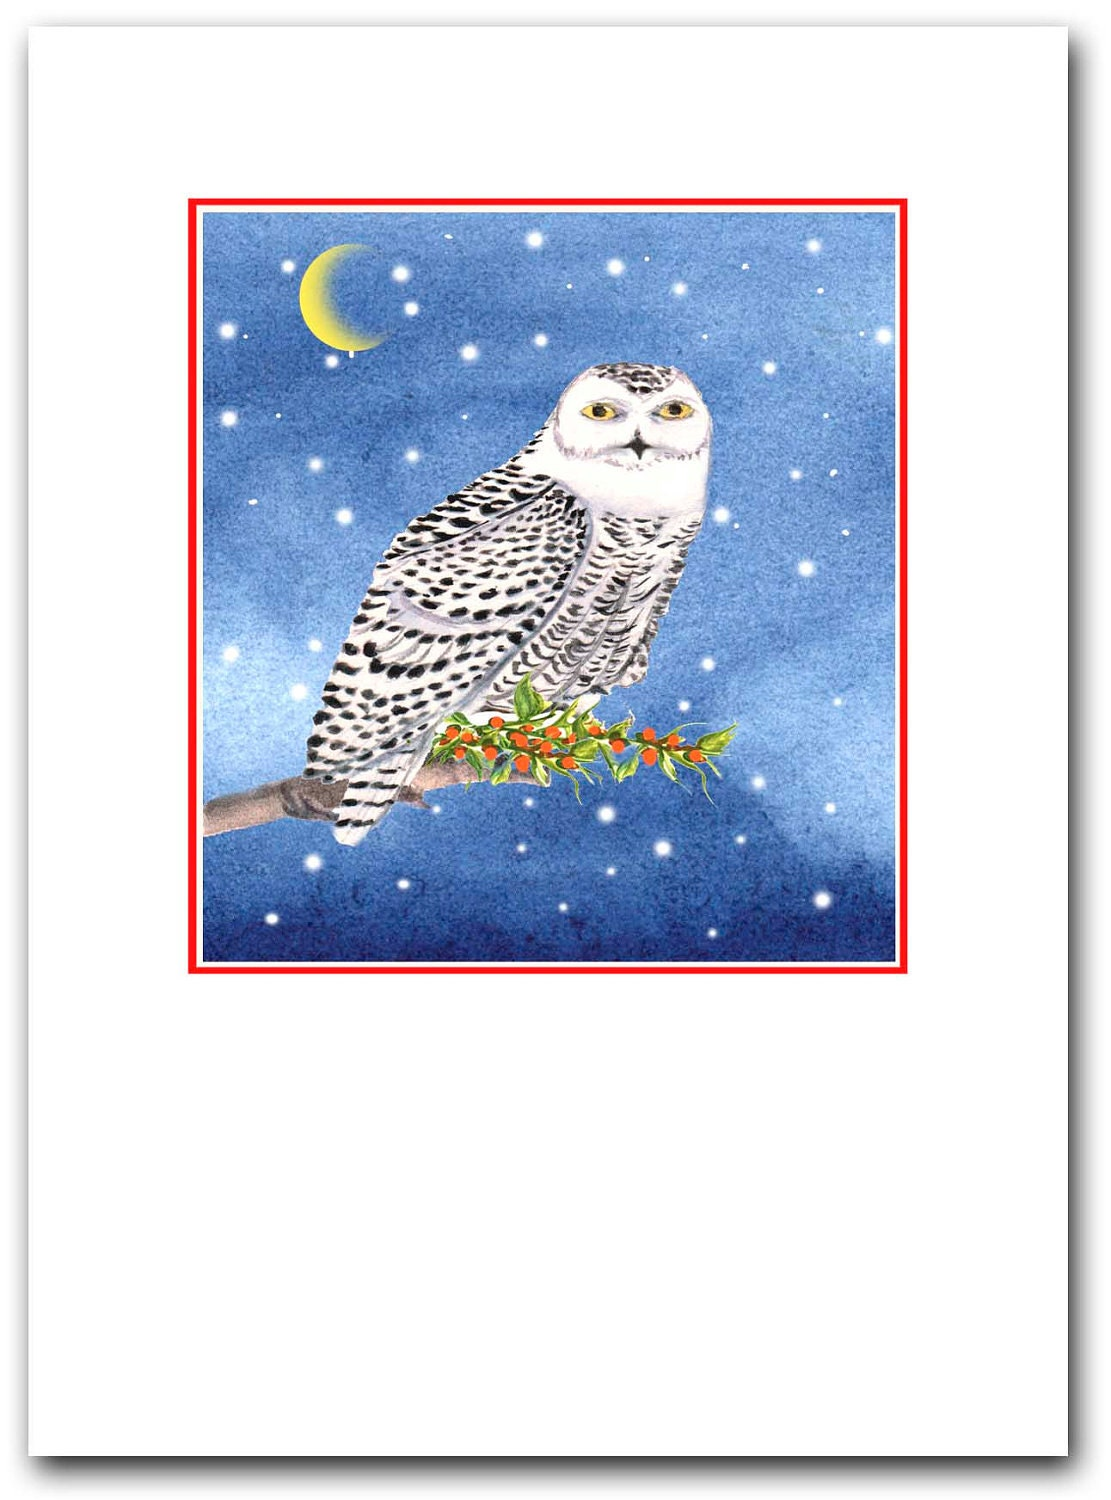 Snowy owl Christmas cards. 10 per boxed set.woodland cards | Etsy